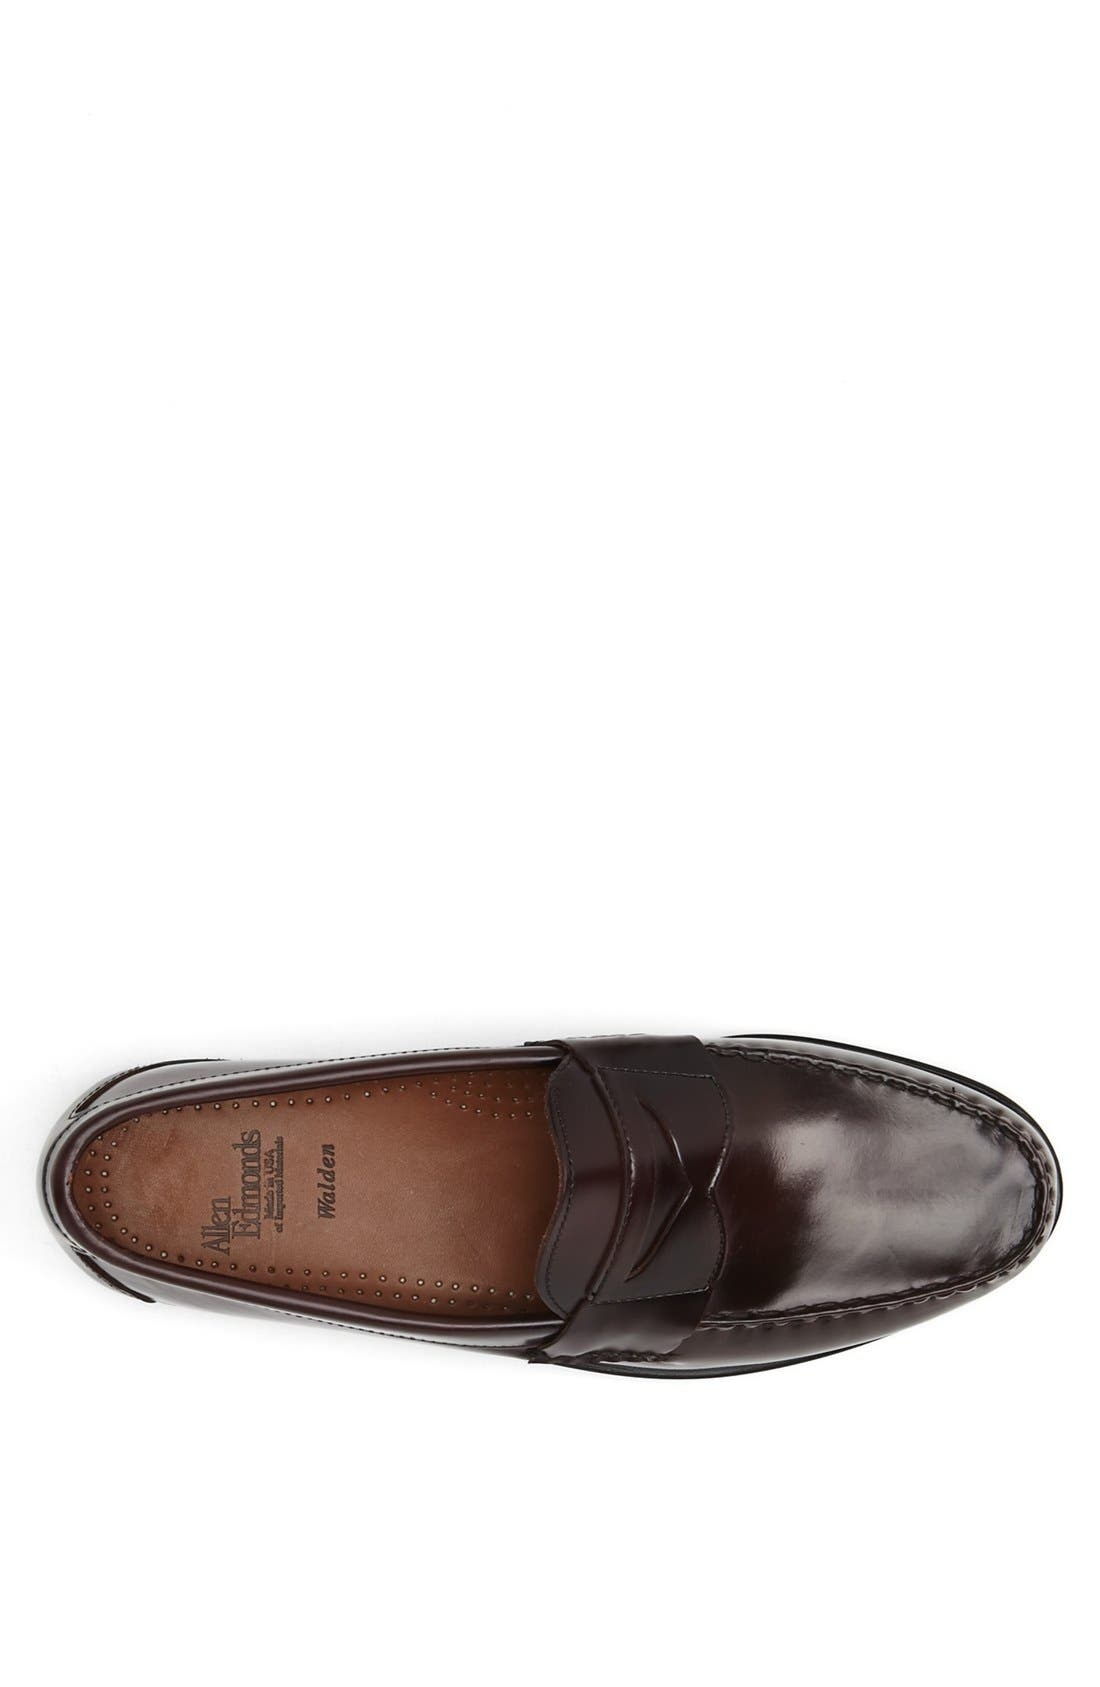 Alternate Image 3  - Allen Edmonds 'Walden' Loafer (Men)